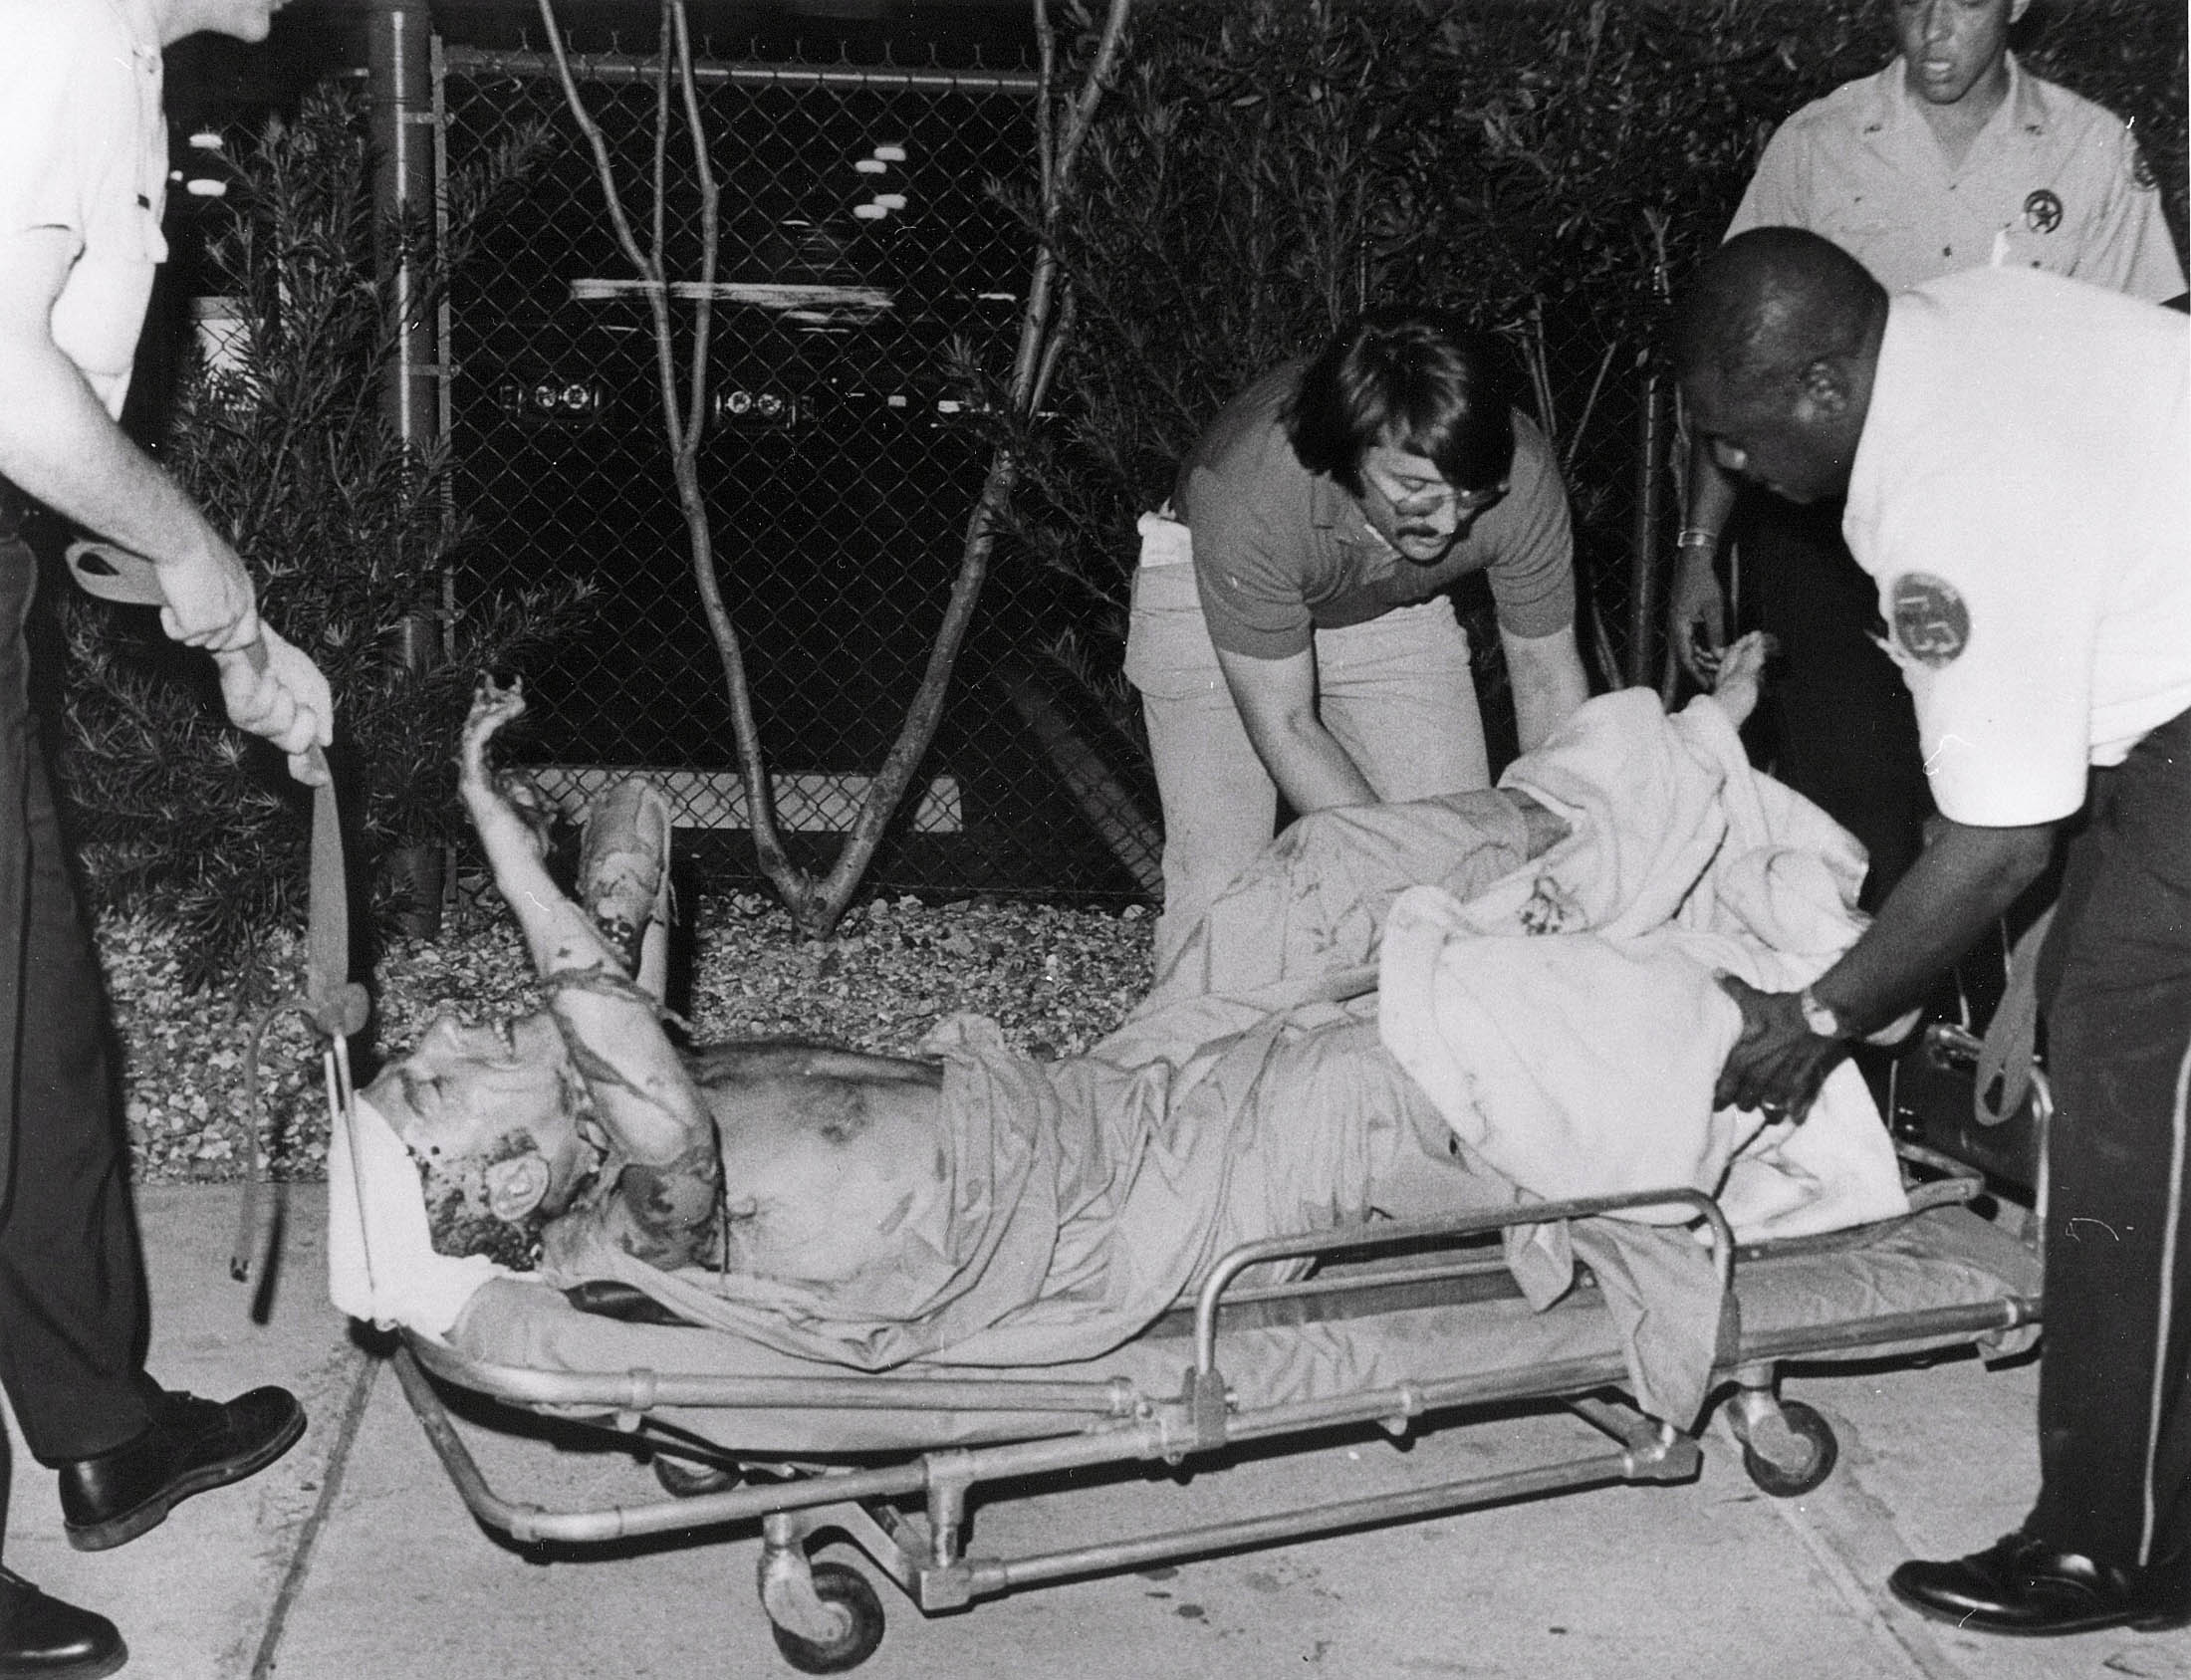 Luther Boggs being helped on to a stretcher.